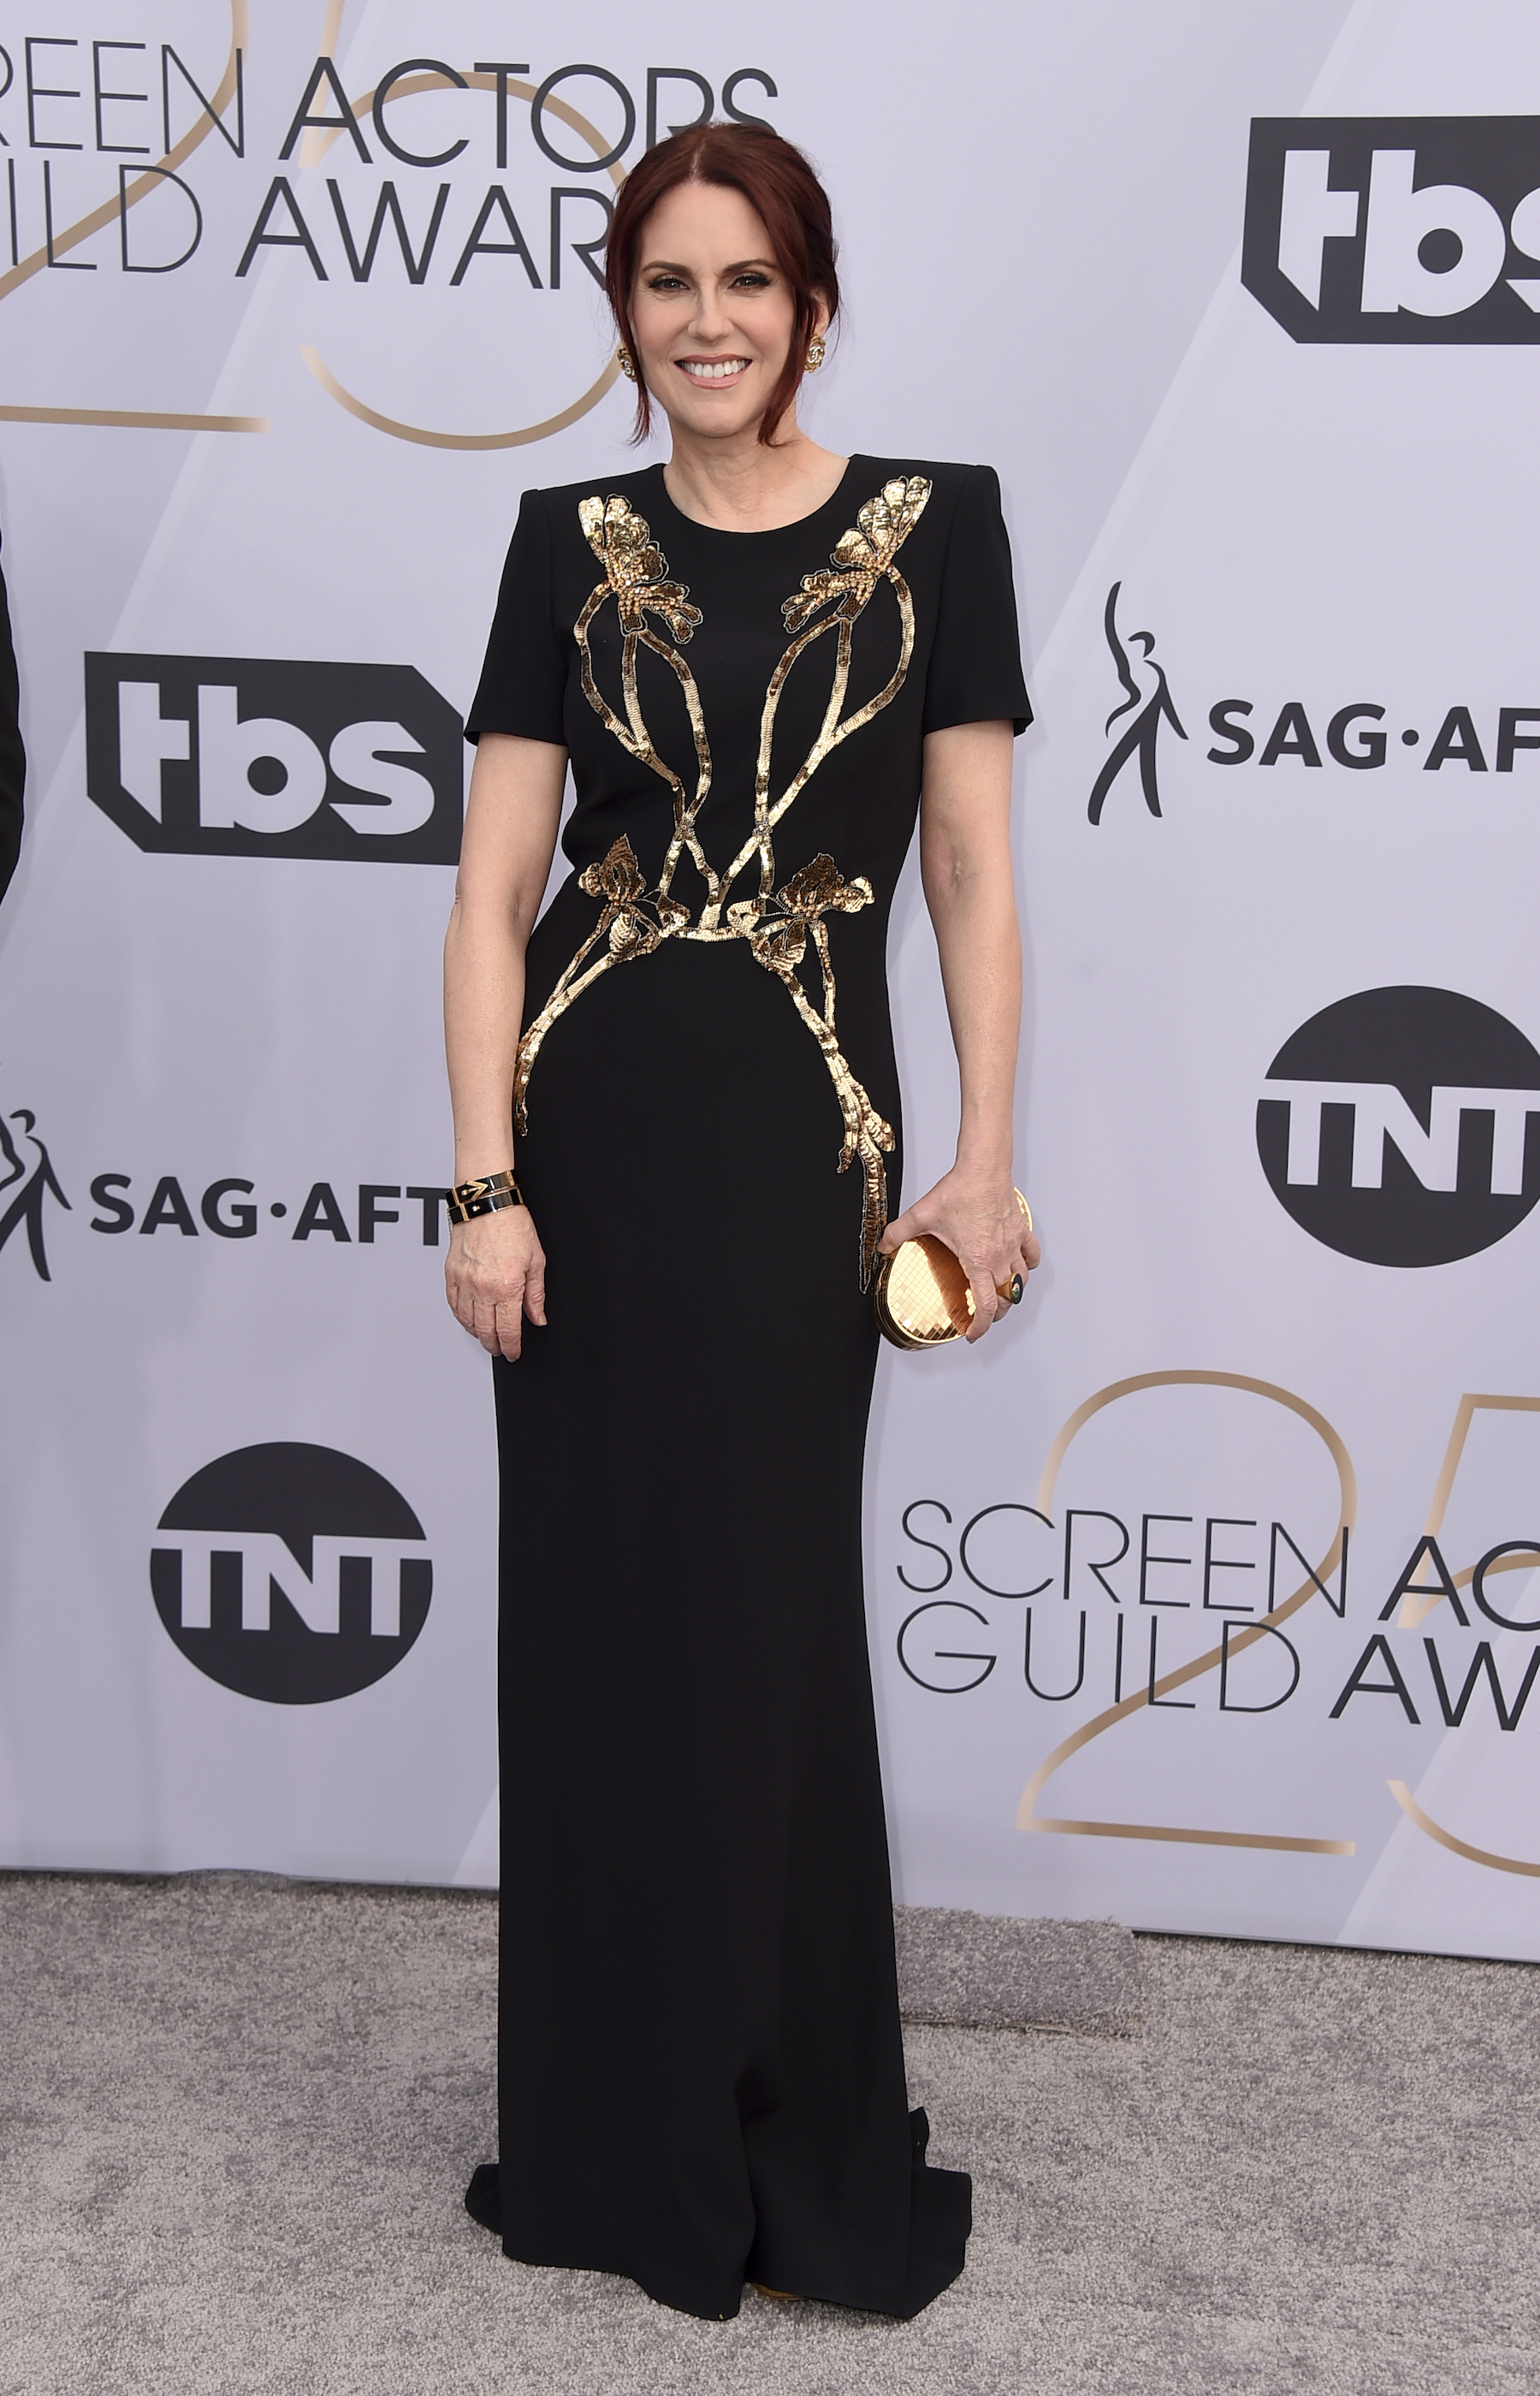 <div class='meta'><div class='origin-logo' data-origin='AP'></div><span class='caption-text' data-credit='Jordan Strauss/Invision/AP'>Megan Mullally arrives at the 25th annual Screen Actors Guild Awards at the Shrine Auditorium & Expo Hall on Sunday, Jan. 27, 2019, in Los Angeles.</span></div>